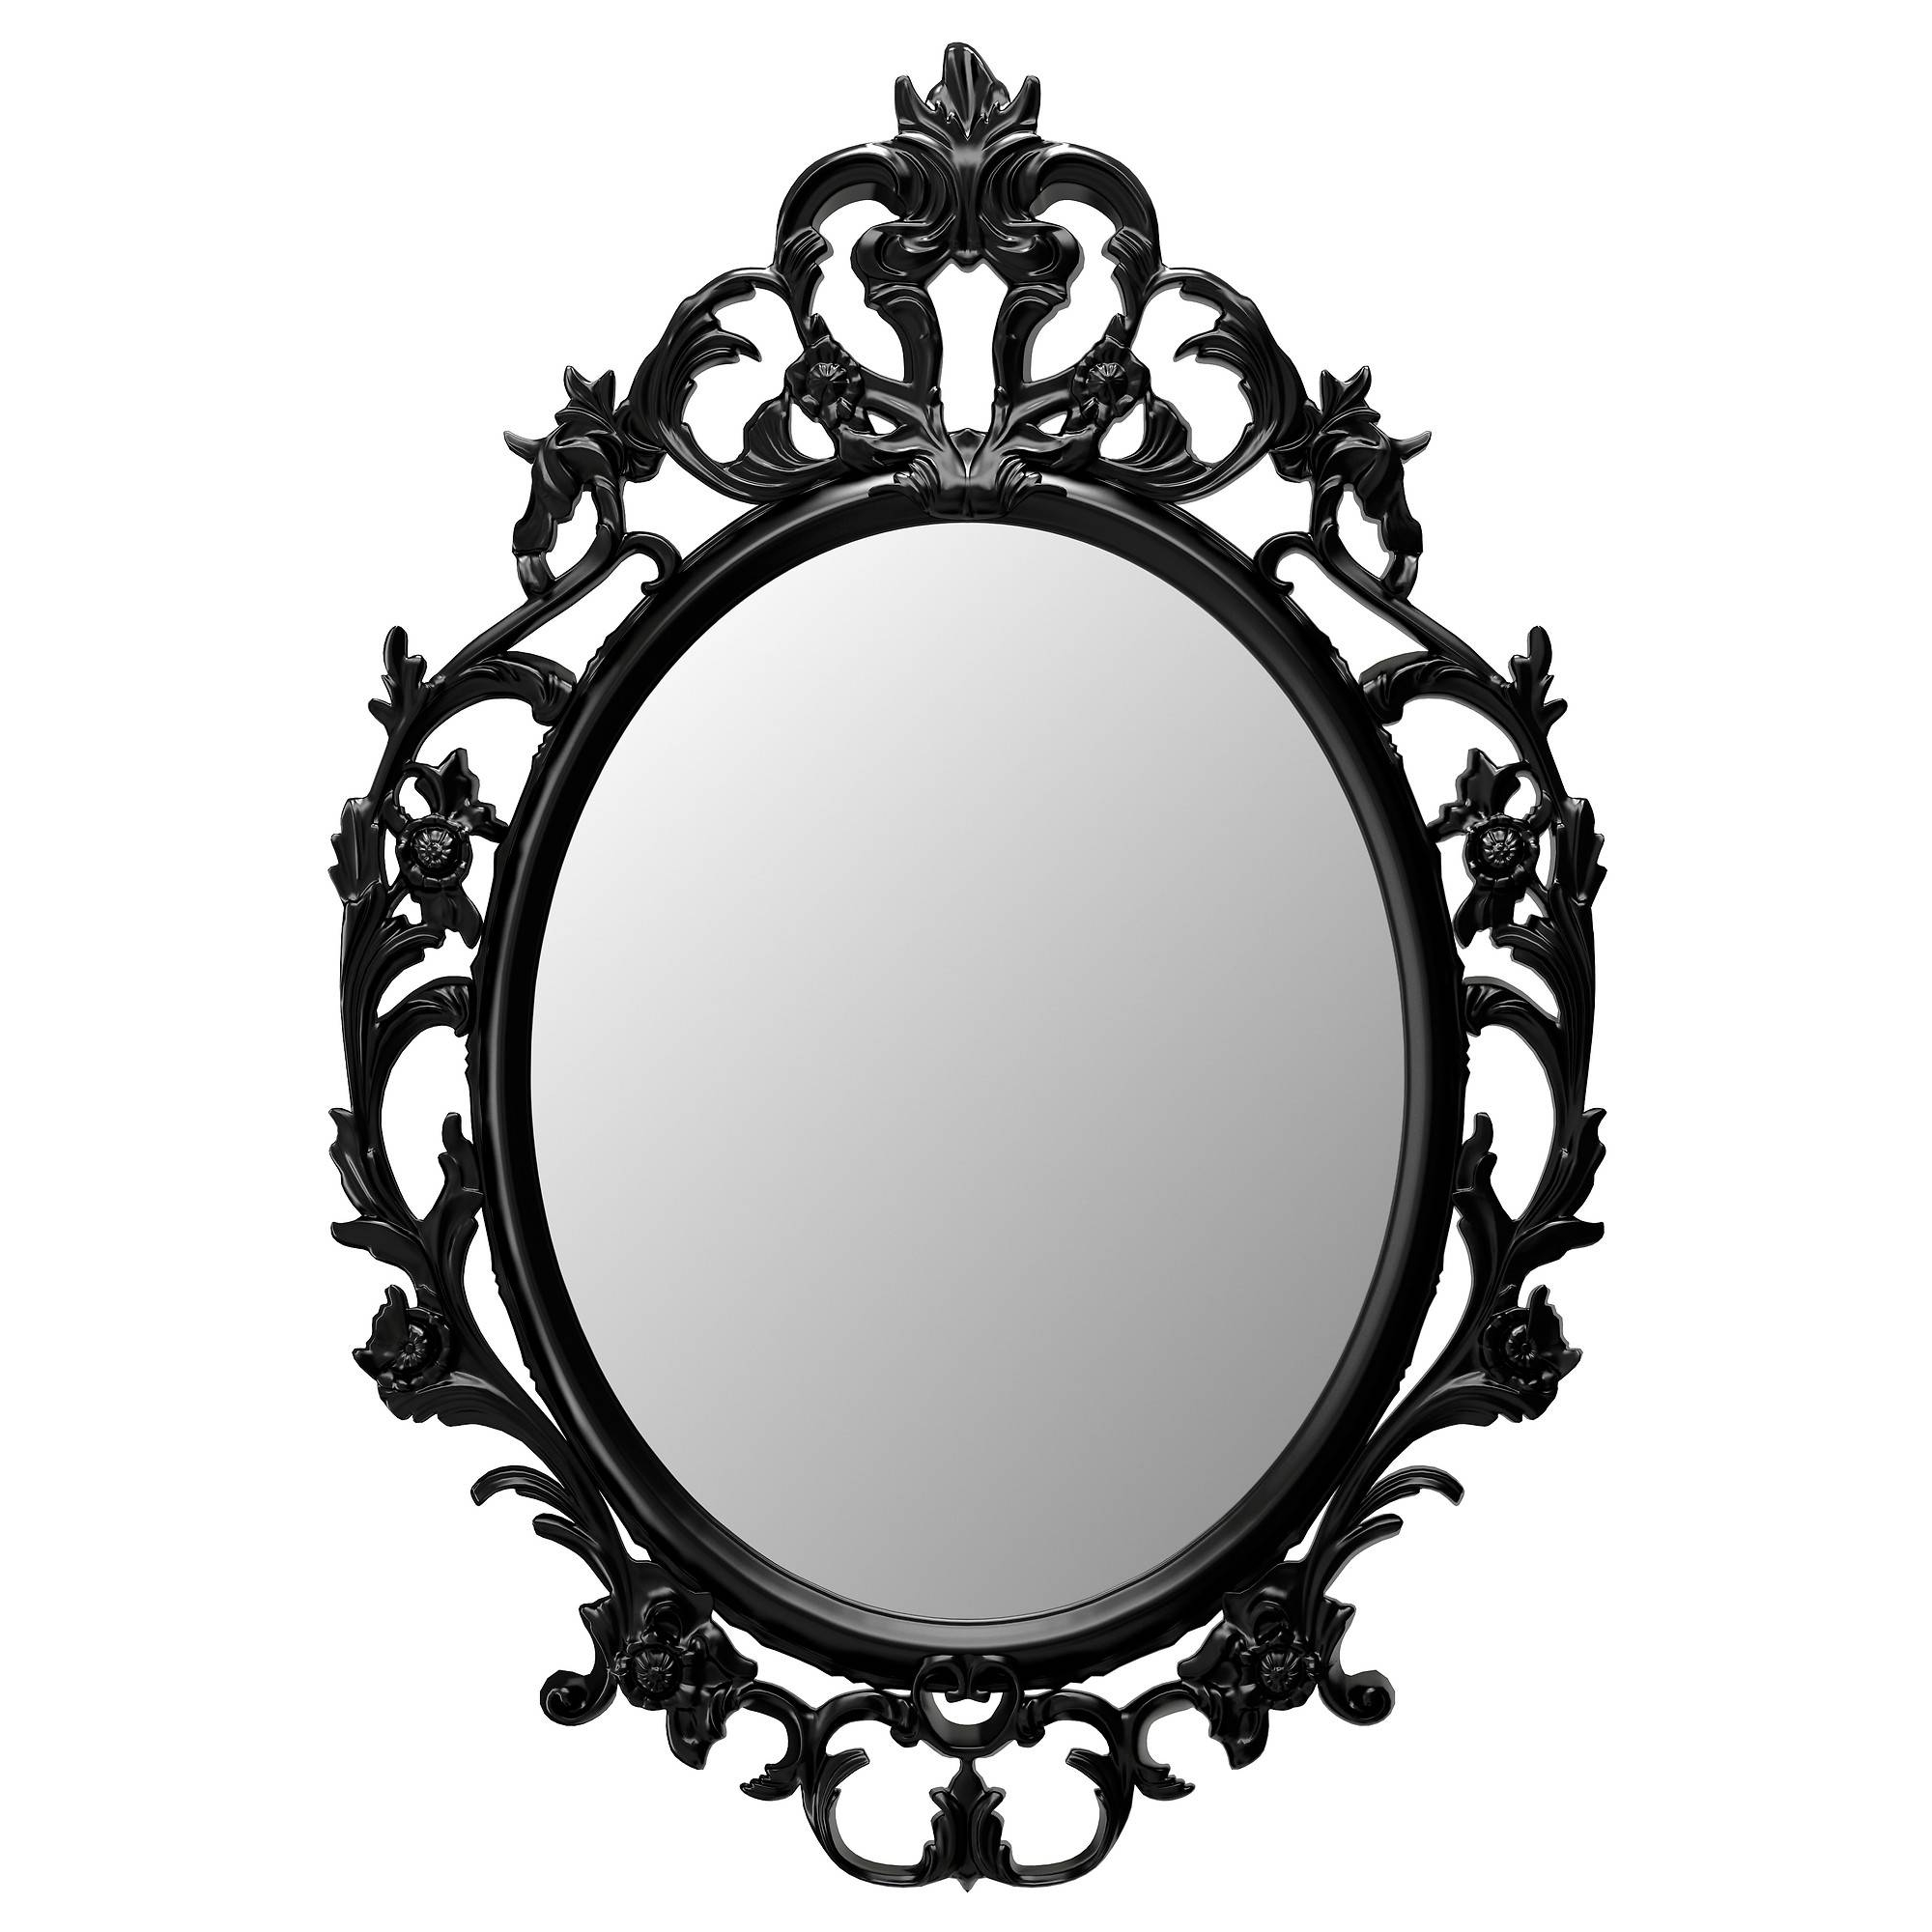 Ung Drill Mirror Oval/black 59X85 Cm – Ikea With Baroque White Mirrors (View 22 of 25)